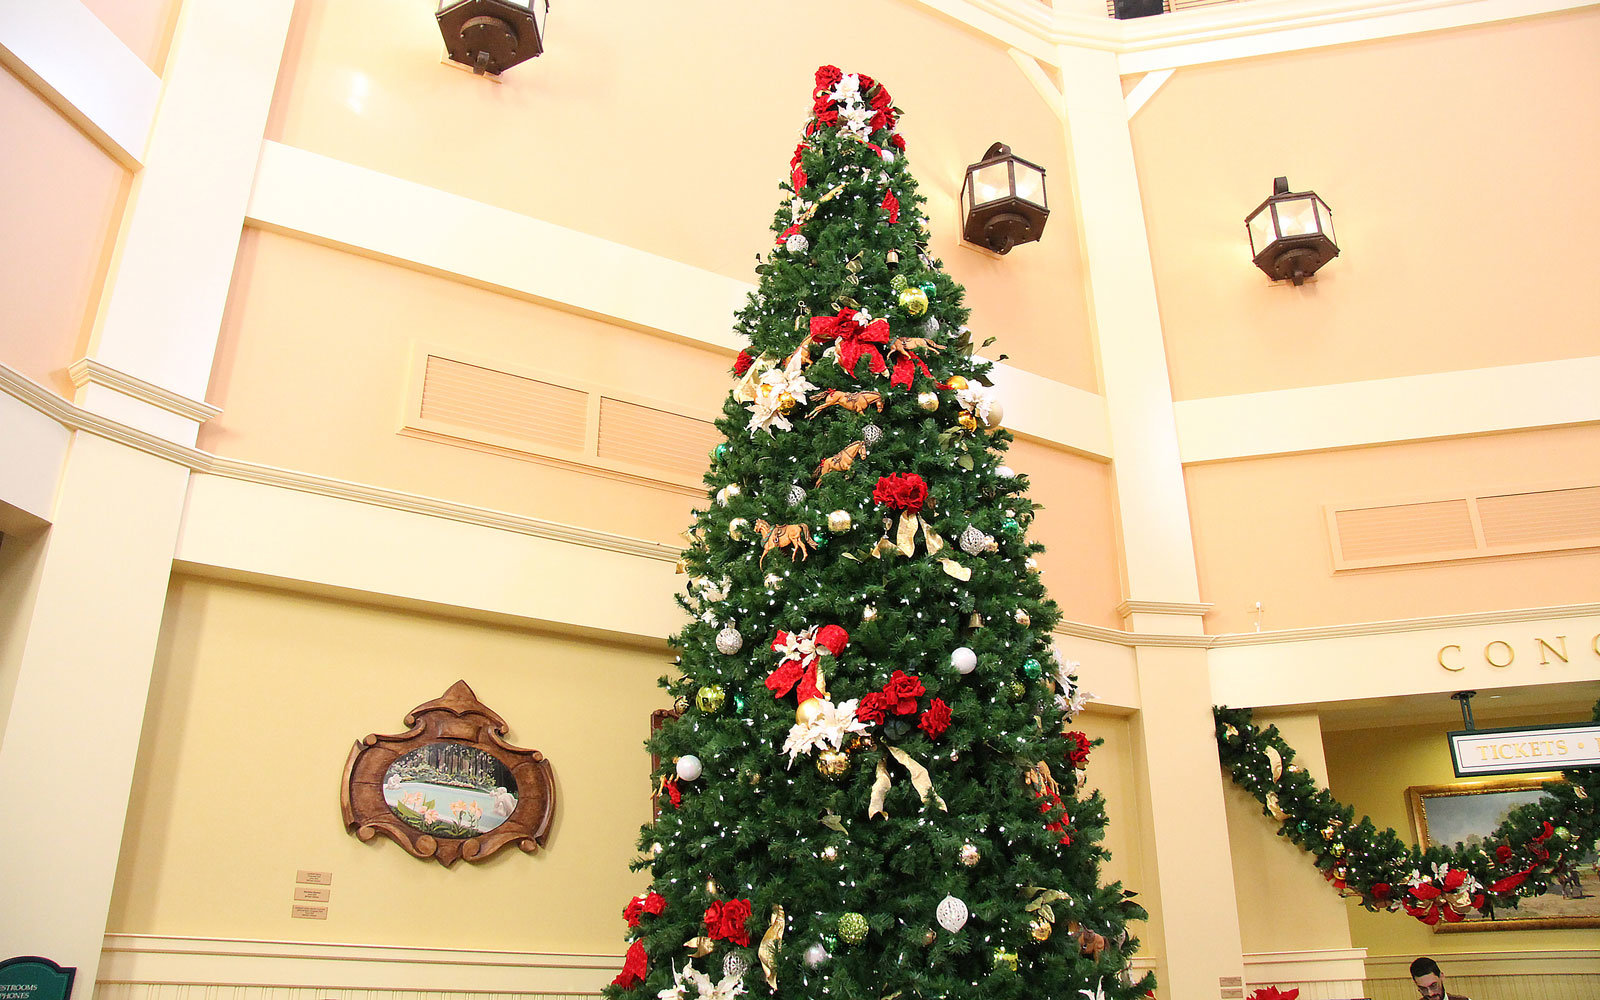 Disney Hotels Won at Christmas, so Everyone Else Can Go Home Now ...